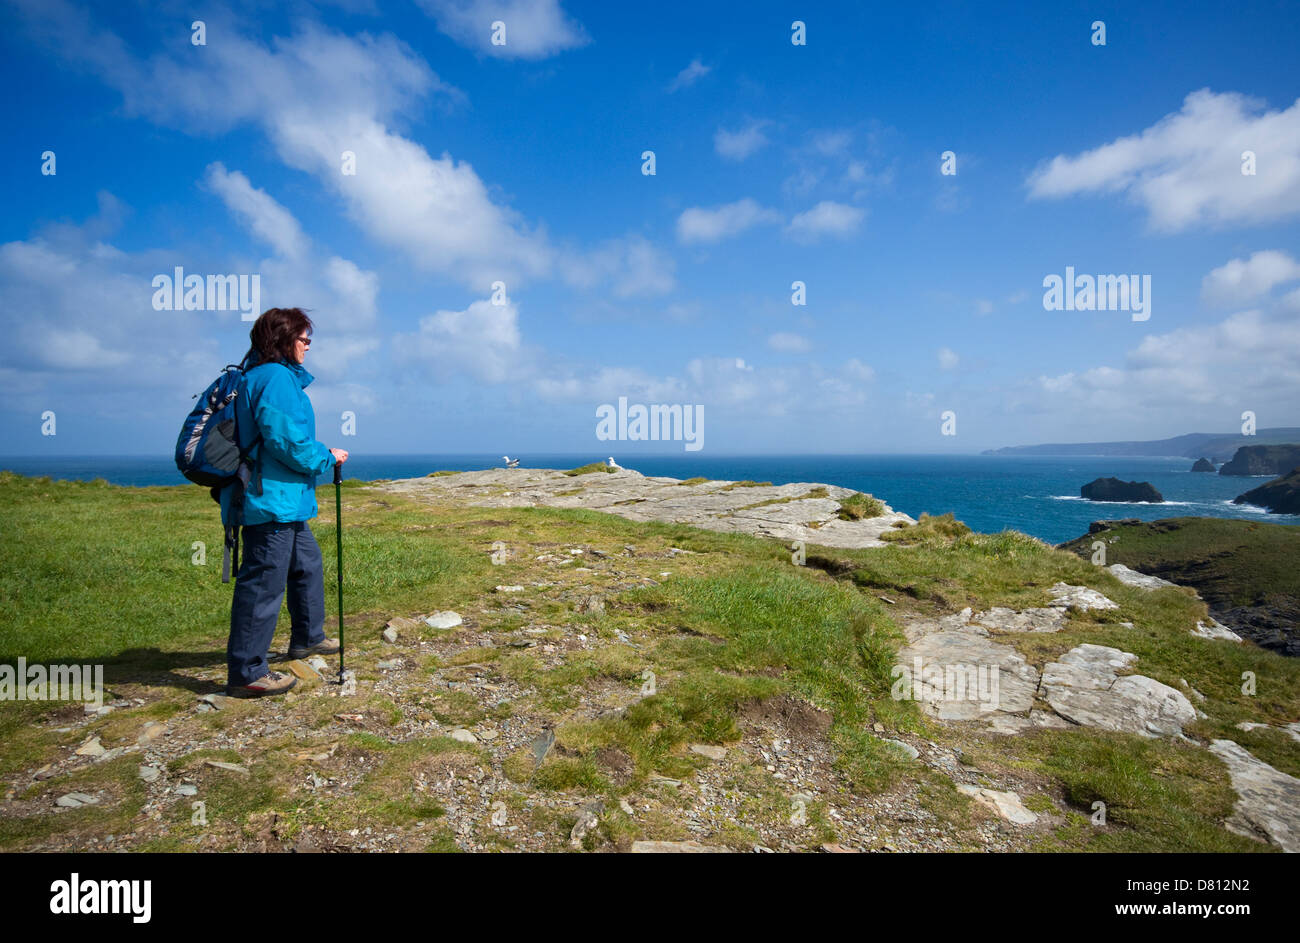 A female hiker taking in the view of the coastline at Tintagel in north Cornwall, England, UK - Stock Image